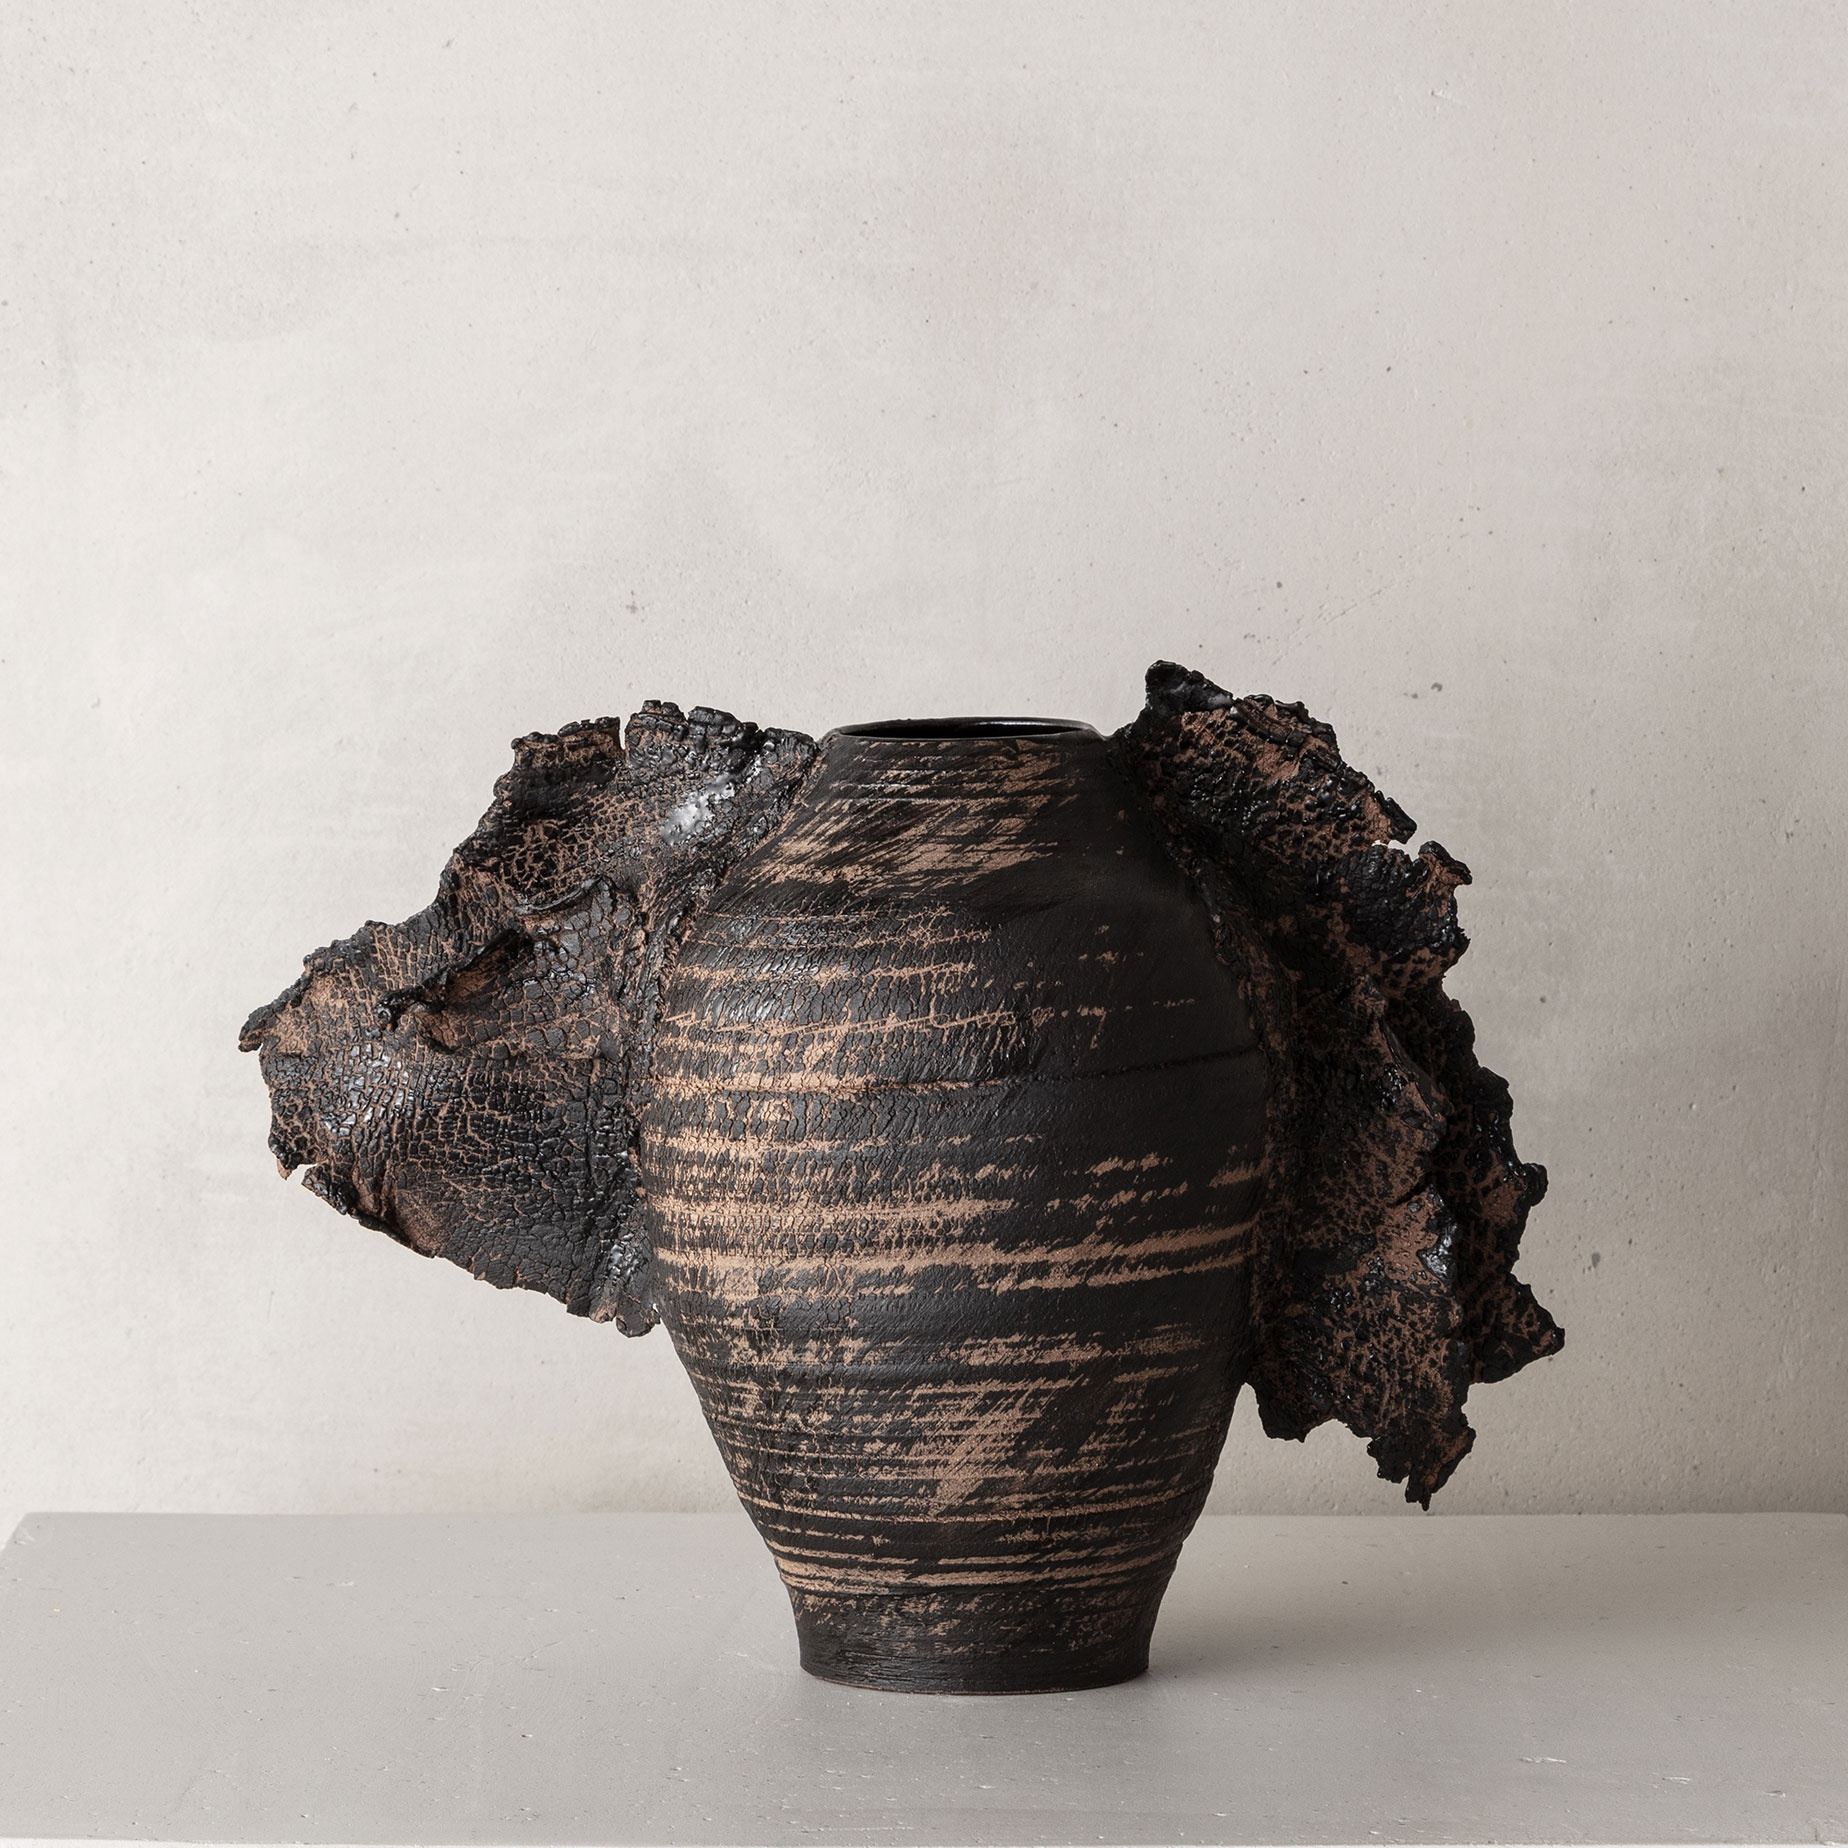 CHTHONIC VESSEL 04Peter Speliopoulos, Peter Speliopoulos Ceramics, Peter Speliopoulos Artist, Peter Speliopoulos Fashion Designer, Contemporary Ceramics, Contemporary Greek Ceramics, Interior Design Accessories.